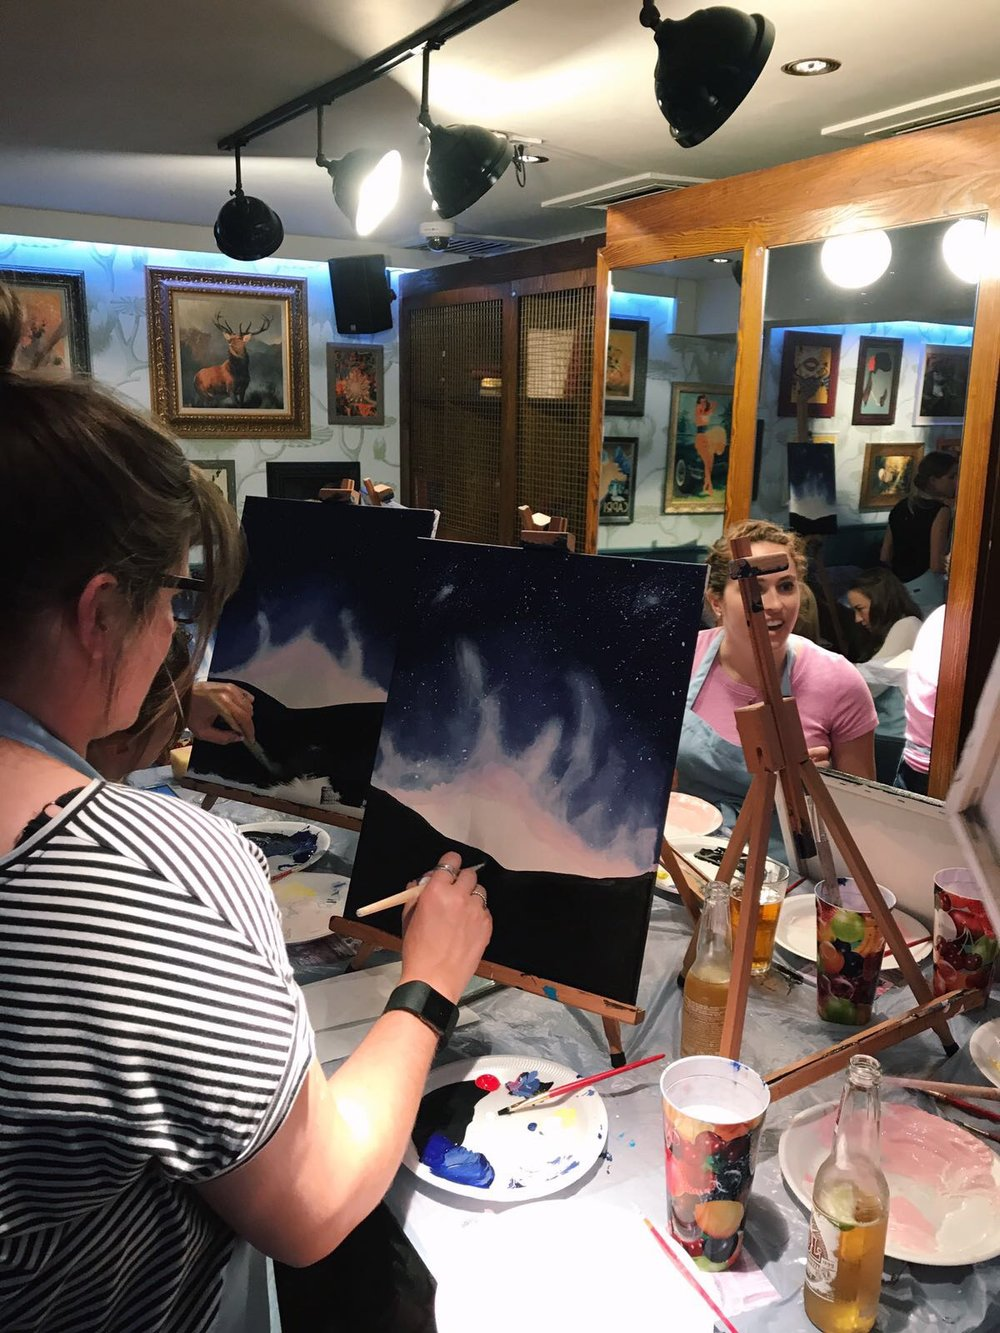 Getting involved with painting all edges of the canvas!